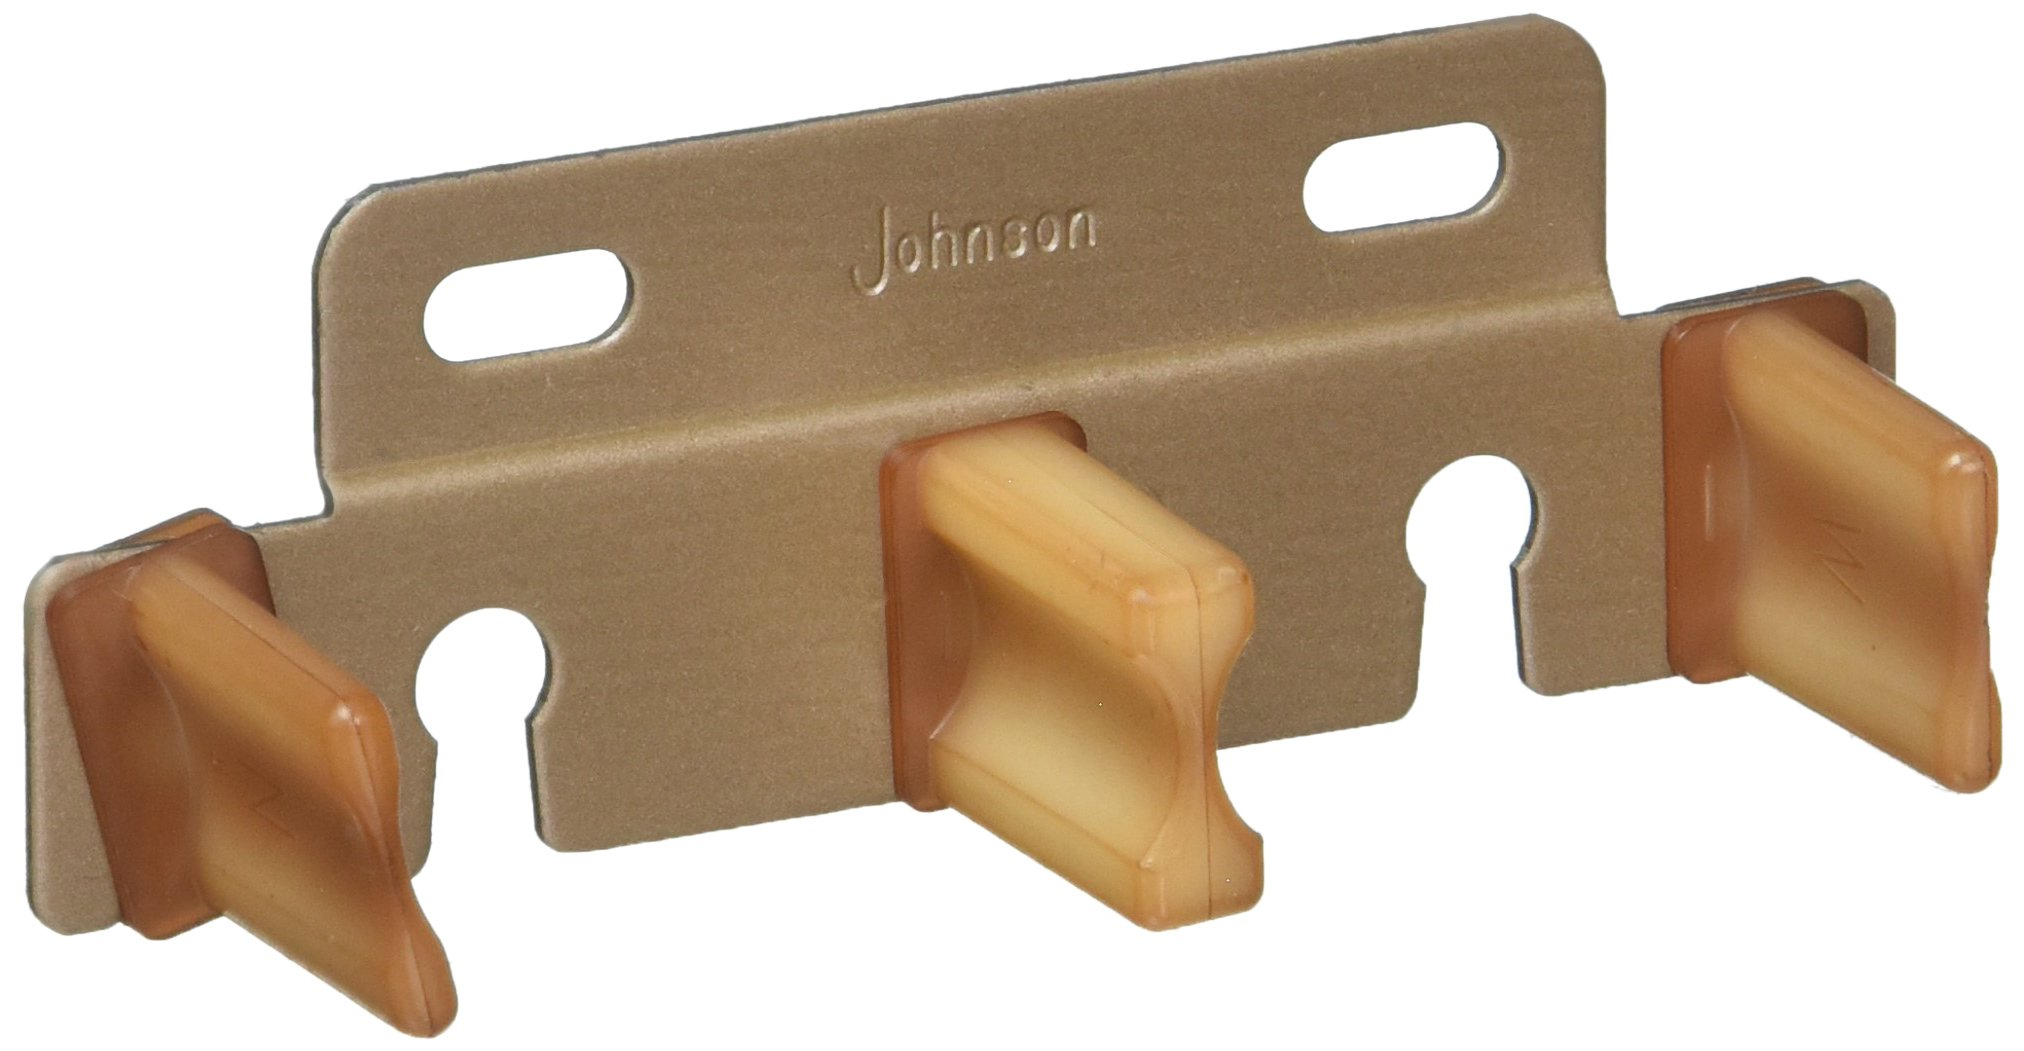 Johnson Hardware 2135PPK1 Bypass Door Adjustable Guide For 3/4-Inch Or 1-3/8 -Inch Doors